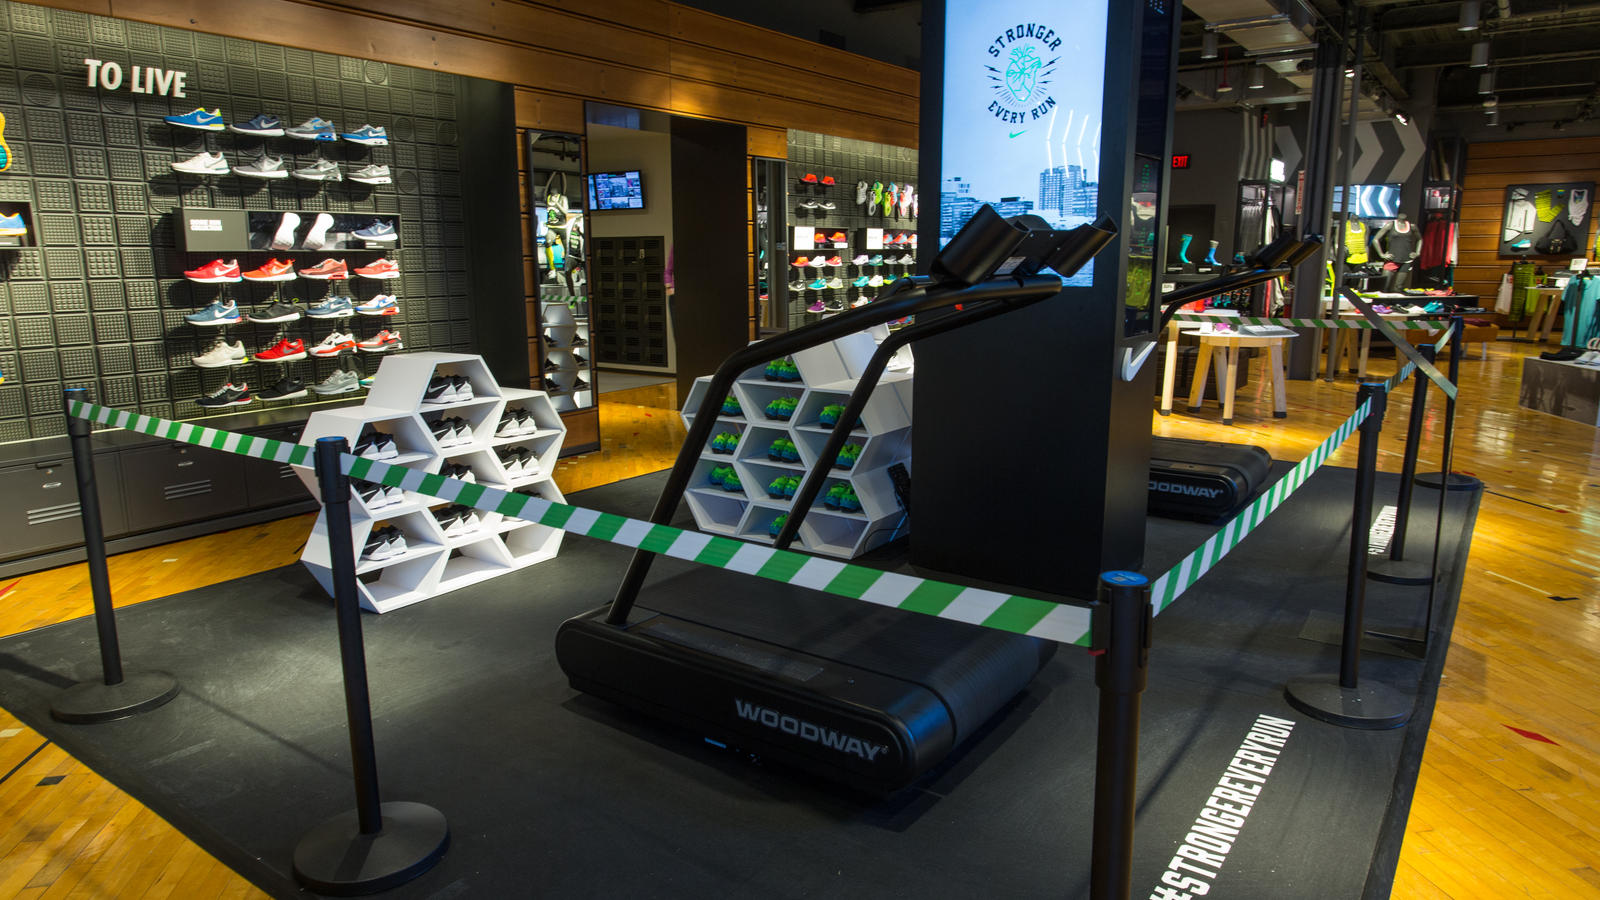 nikeboston10